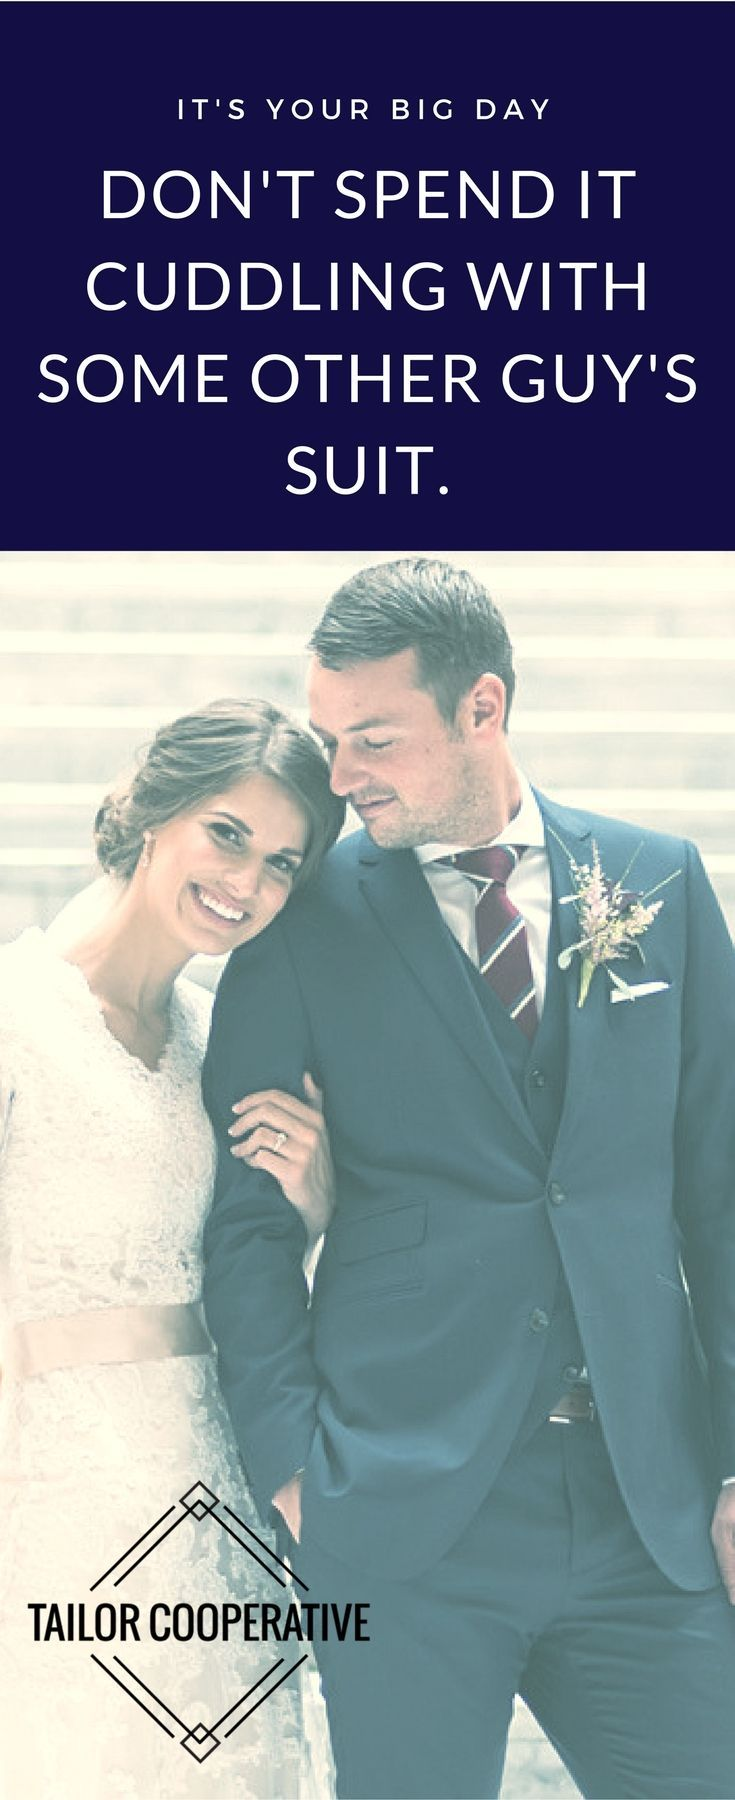 Custom suit for the groom | Wedding Planning | Custom suits are the new wedding rental tuxedo | Tailor Cooperative | Salt Lake City | Utah | Affordable Quality Custom Suits | Groomsmen Suits | Groom's Suit | 4-6 Weeks from Consult to Take Home